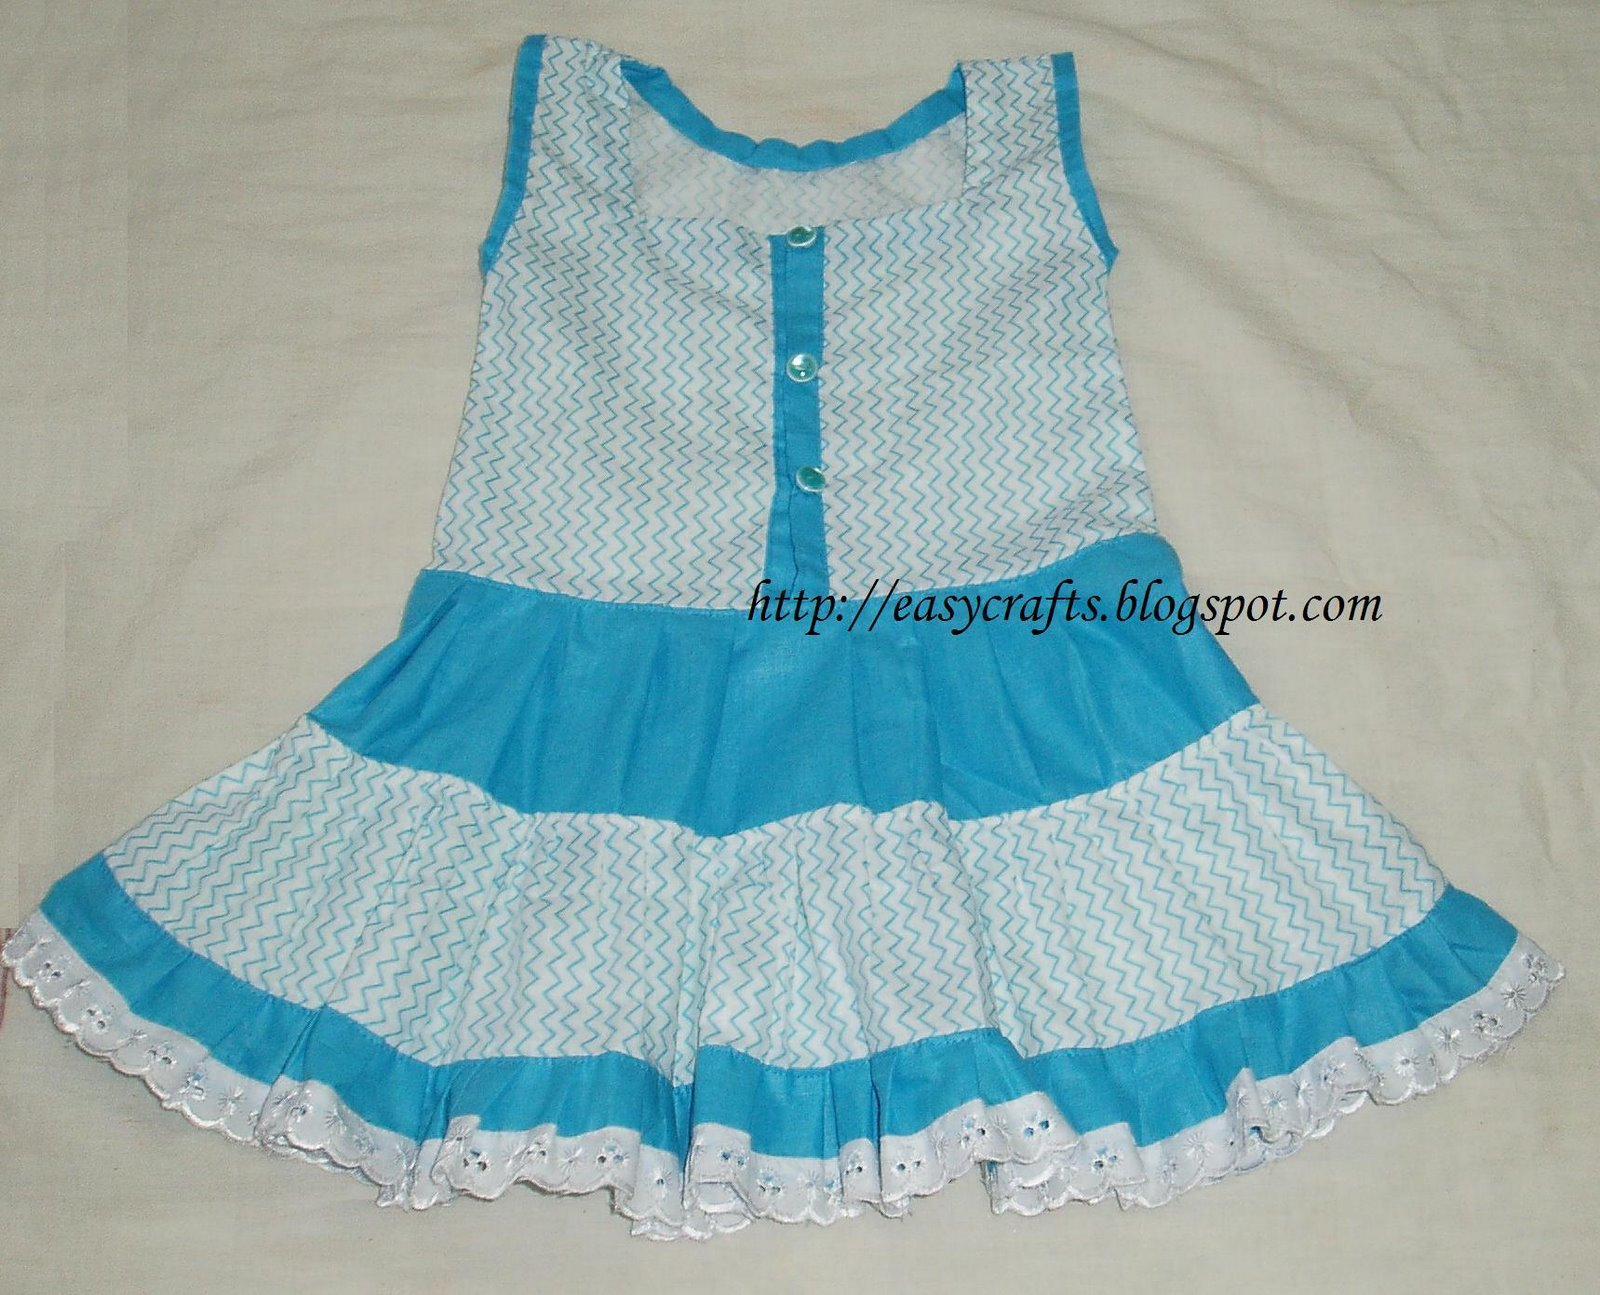 f83b8a81ee94 Easy Crafts - Explore your creativity  Baby Frock